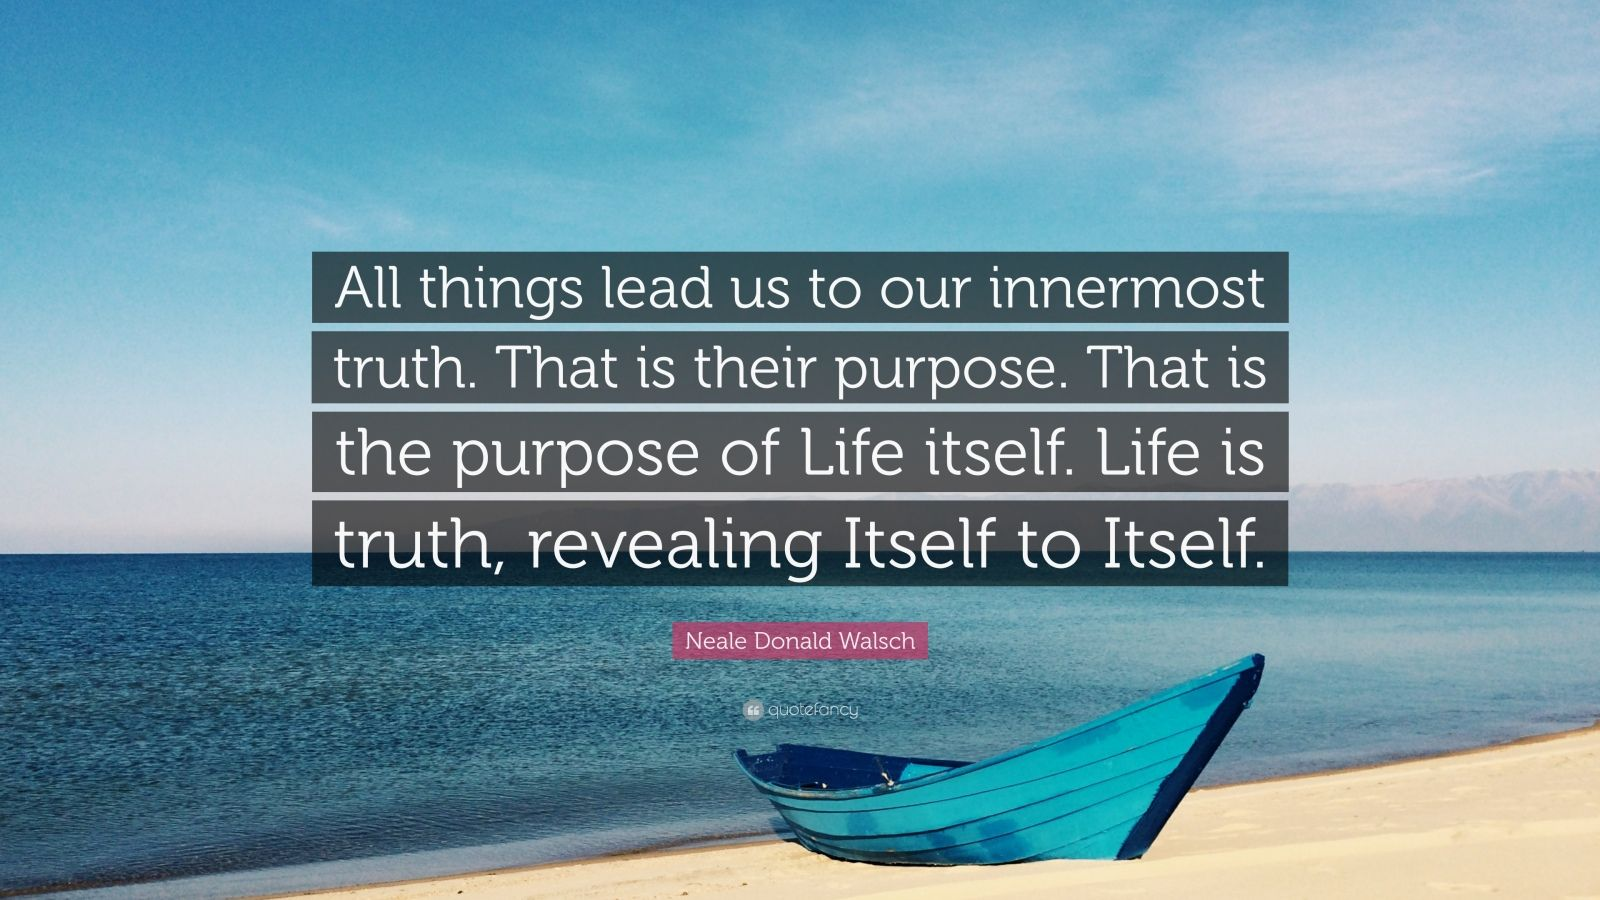 """Neale Donald Walsch Quote: """"All things lead us to our innermost truth. That is their purpose. That is the purpose of Life itself. Life is truth, revealing Itself to Itself."""""""